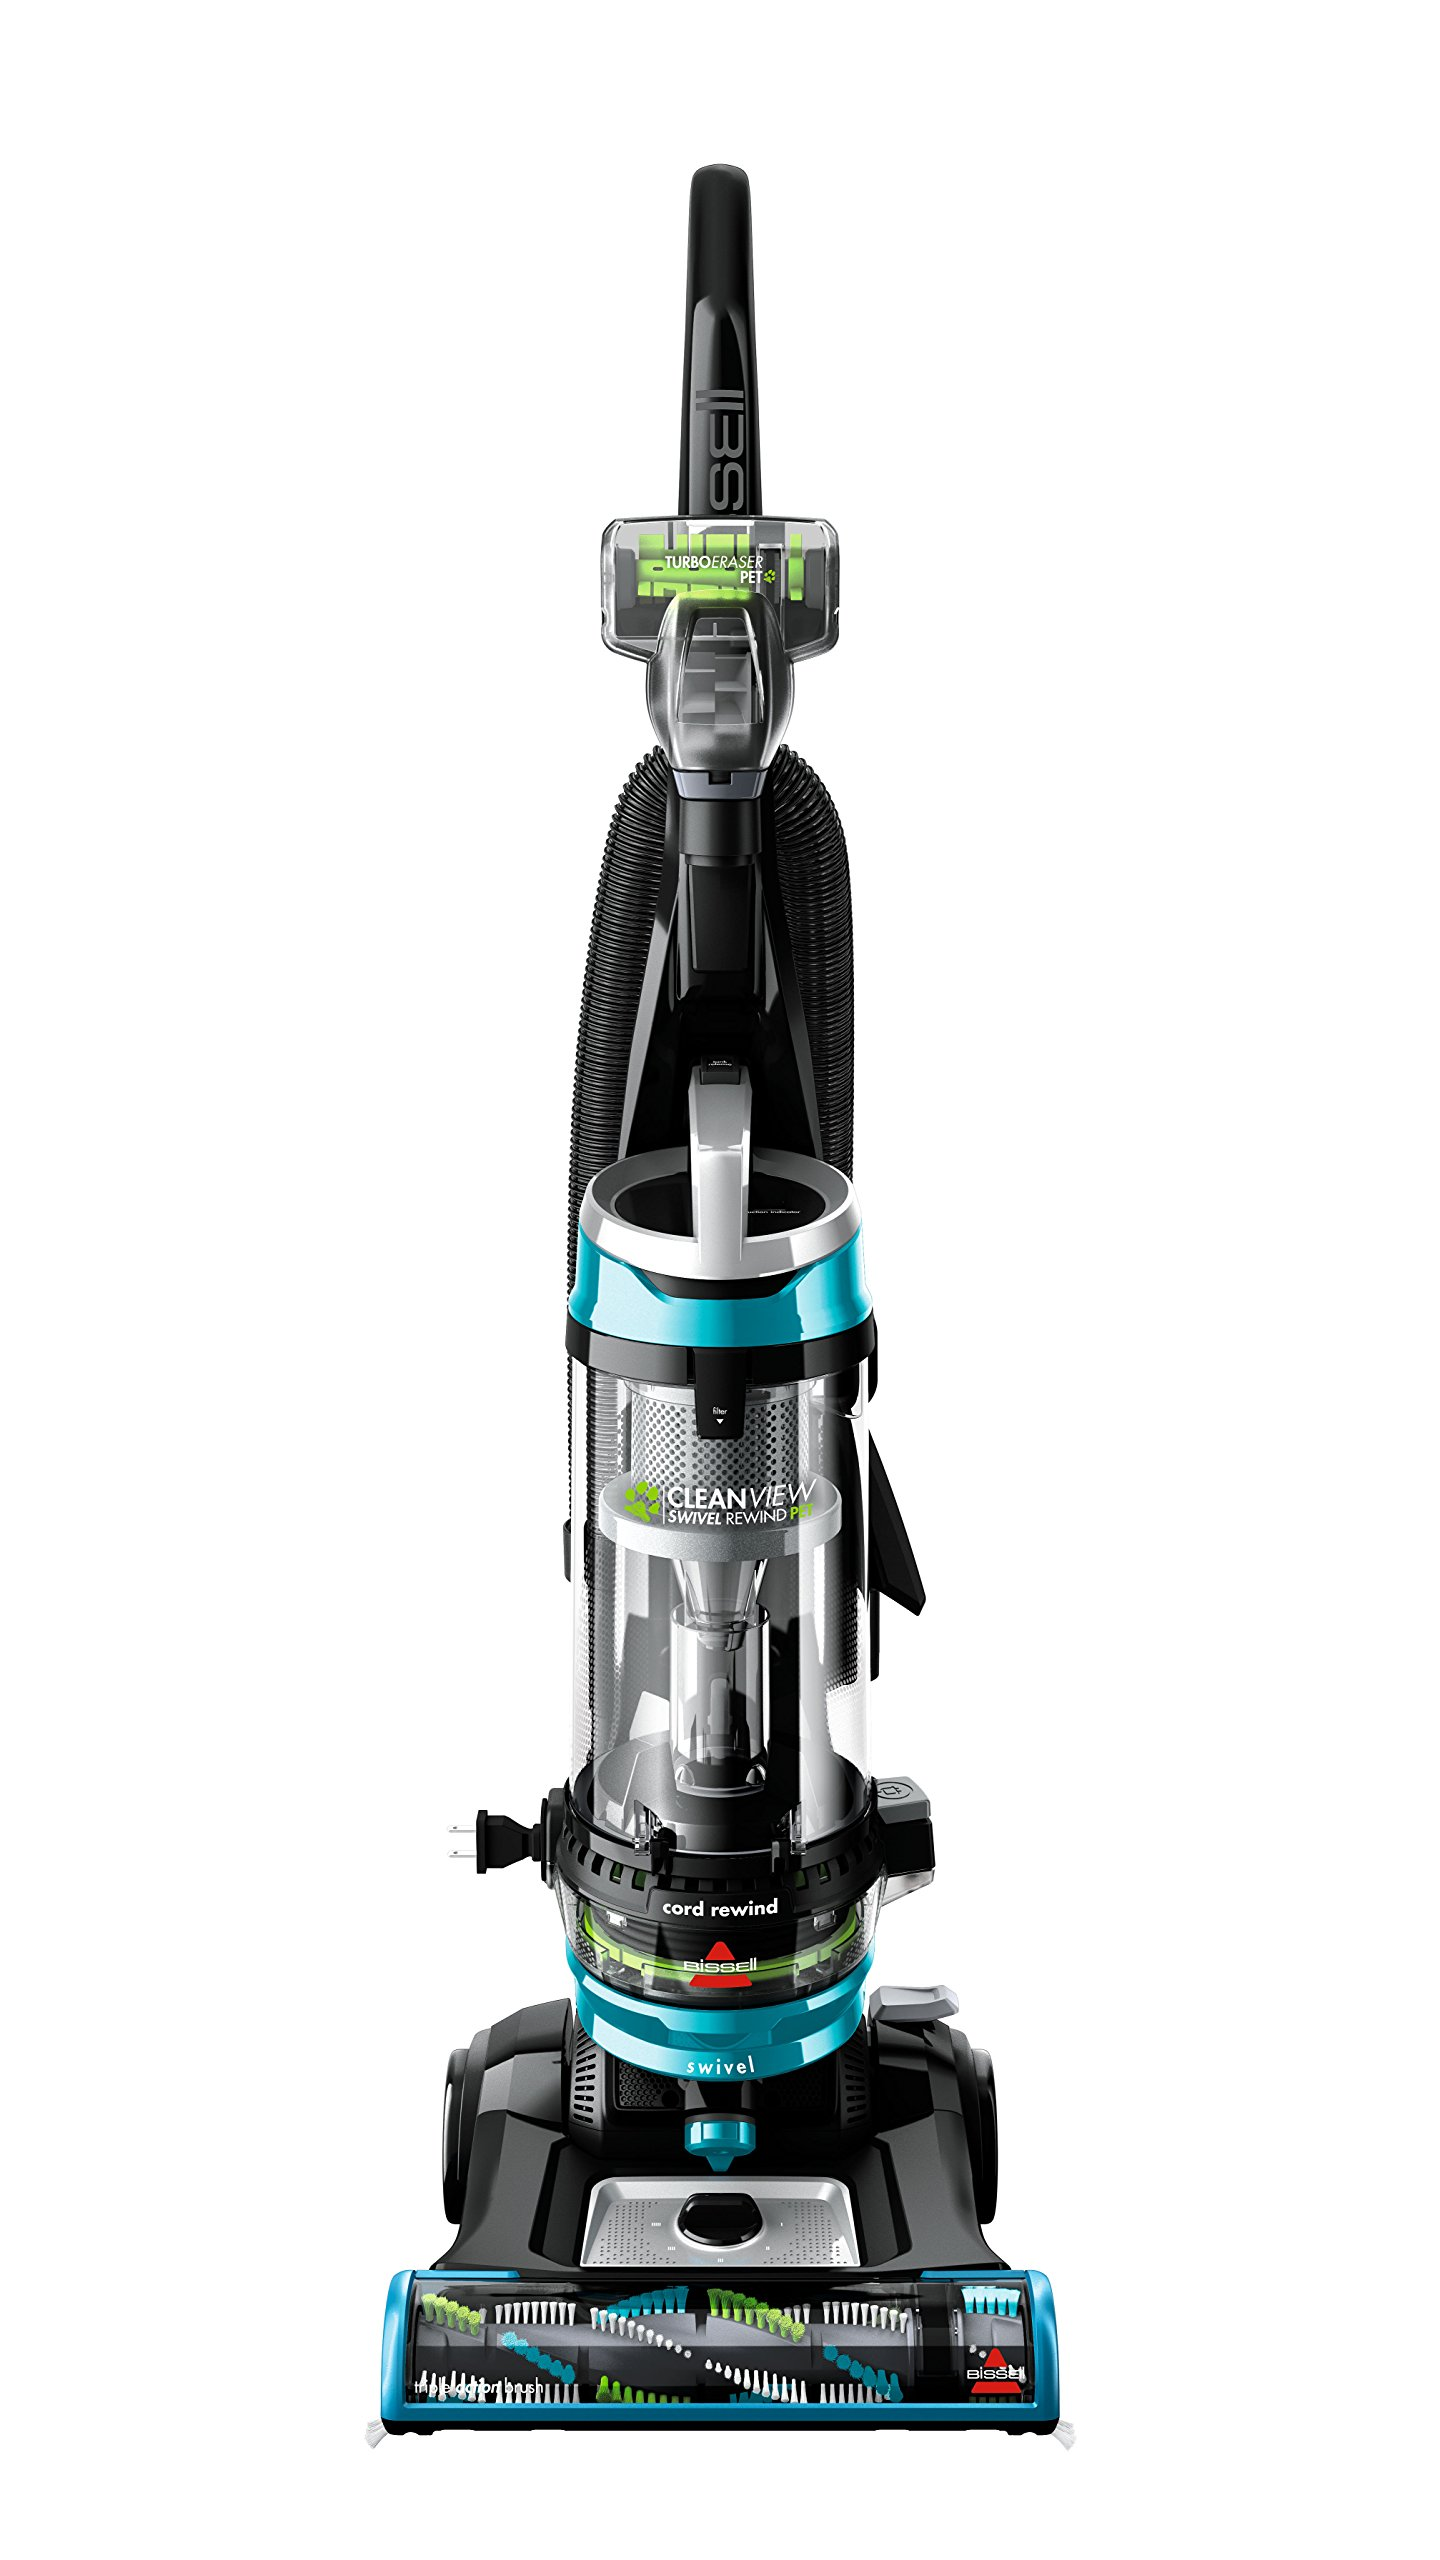 BISSELL Cleanview Swivel Rewind Pet Upright Bagless Vacuum Cleaner by Bissell